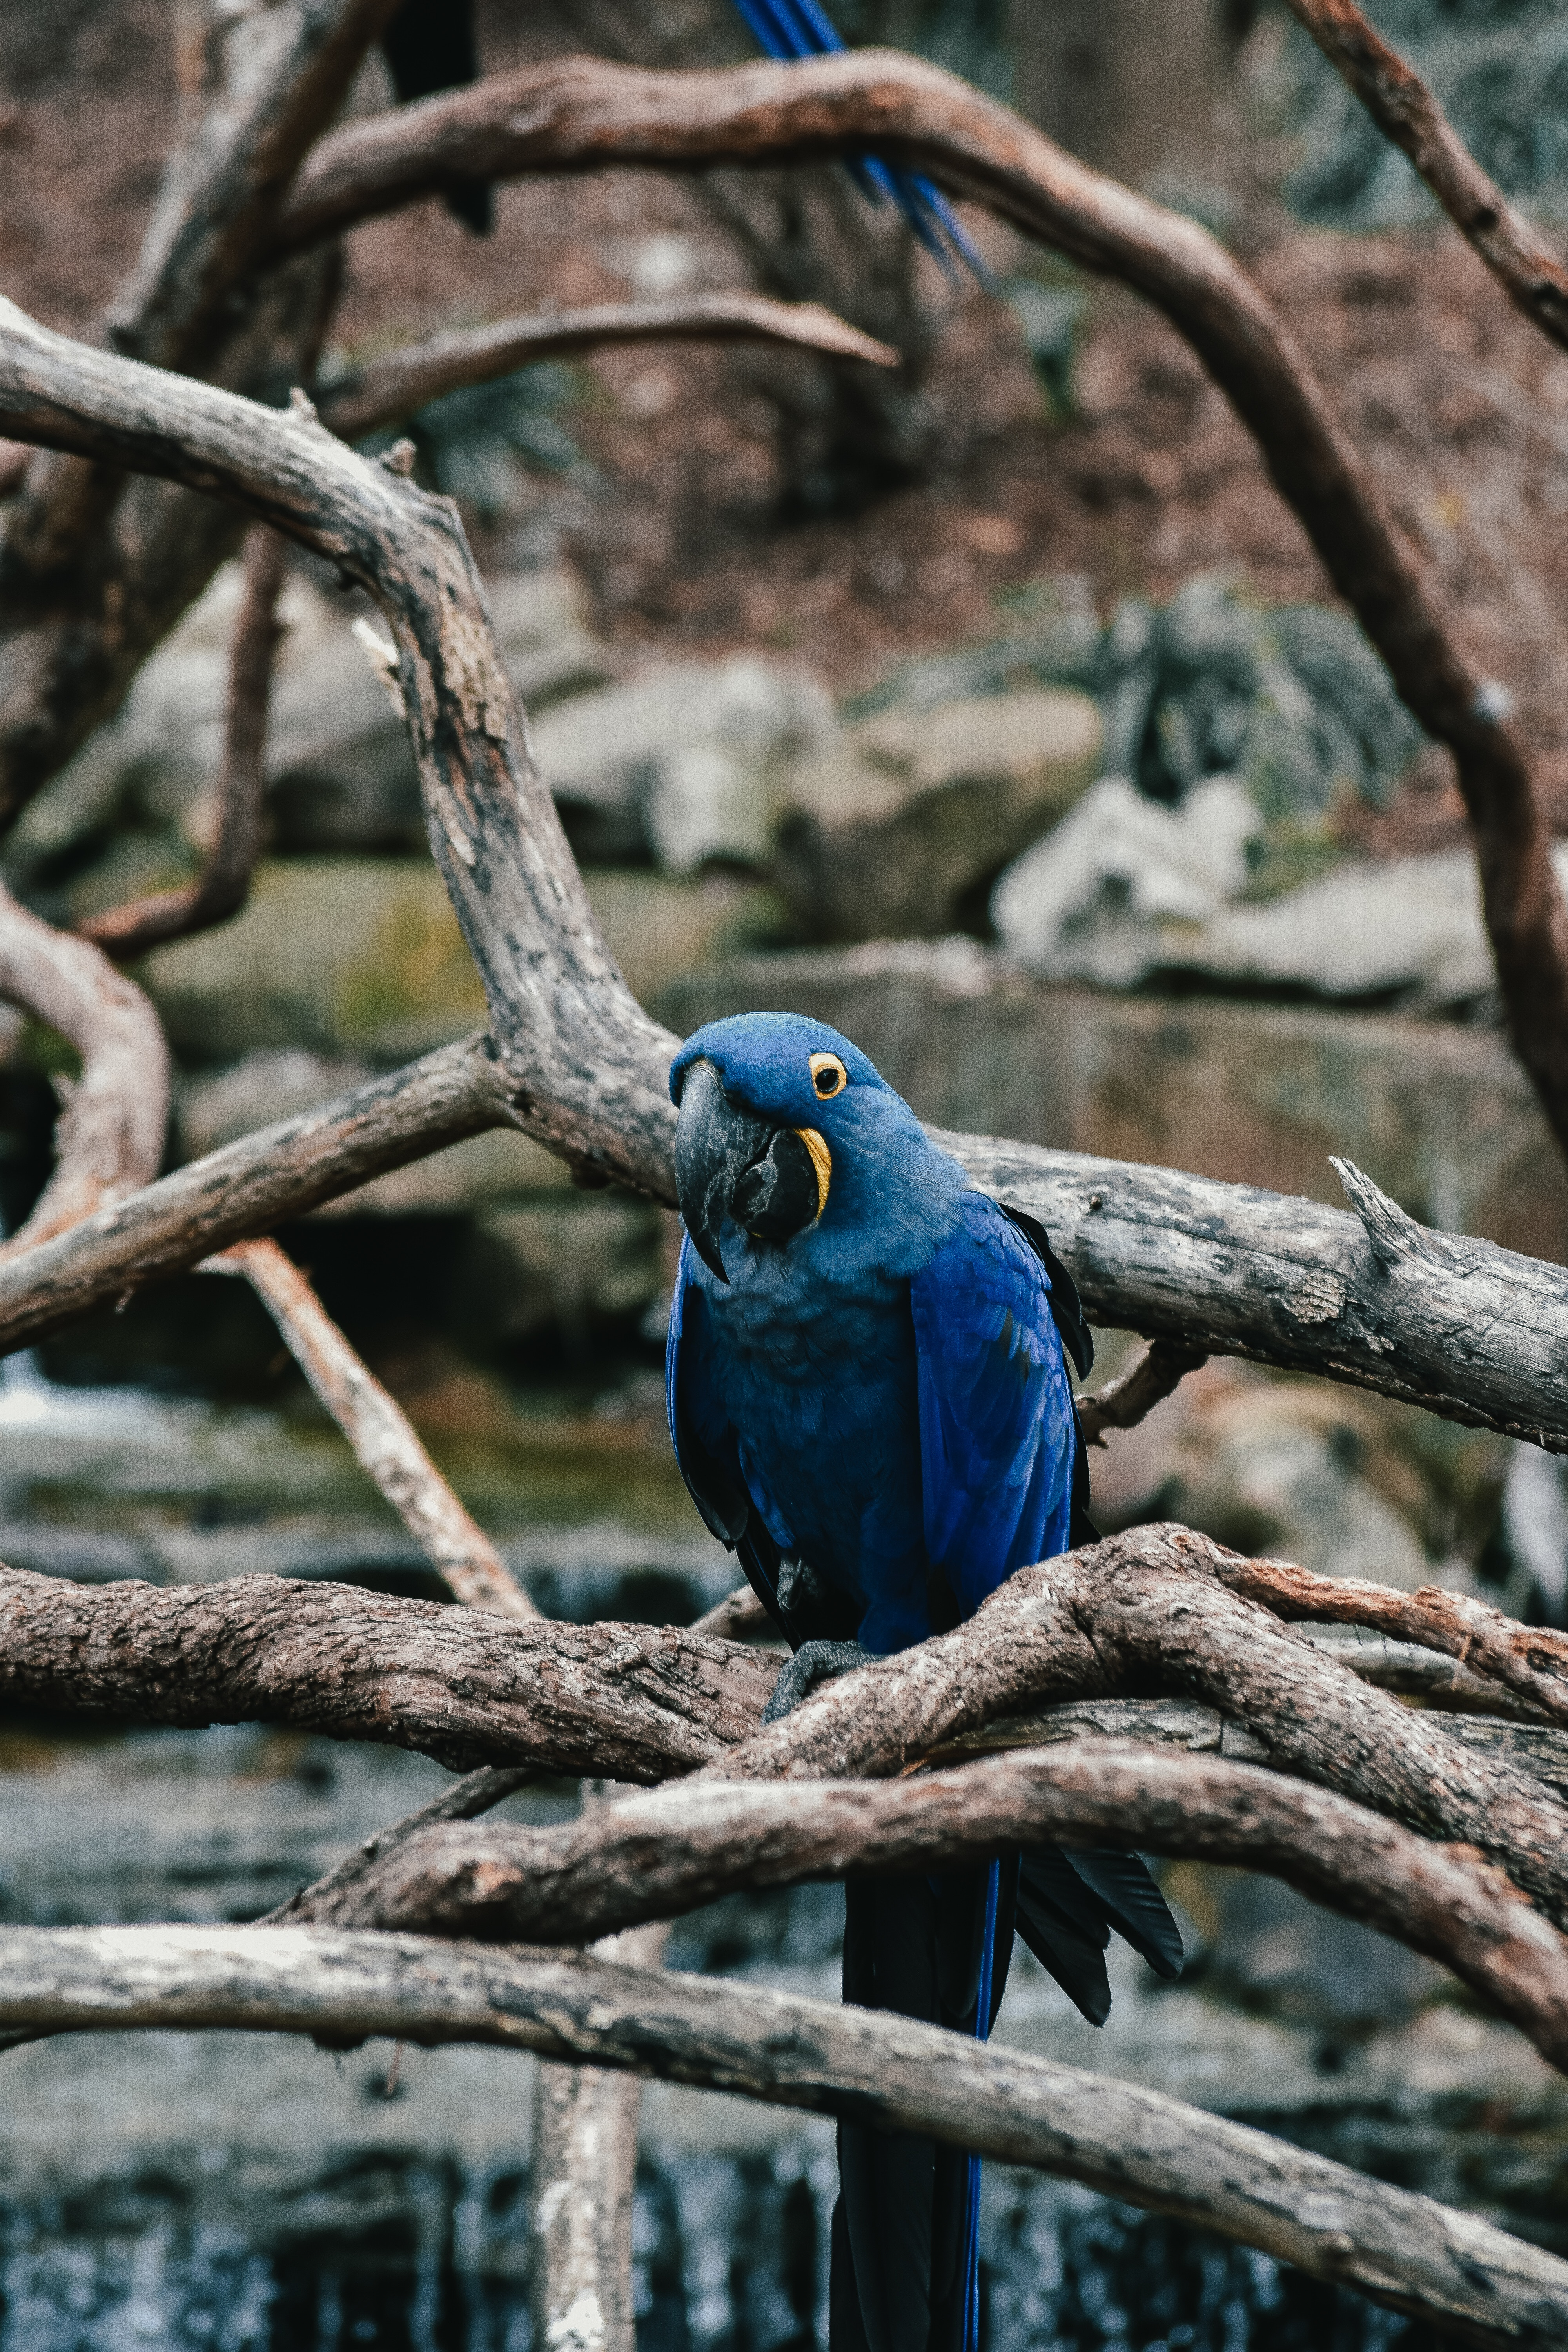 117637 download wallpaper Animals, Parrots, Bird screensavers and pictures for free